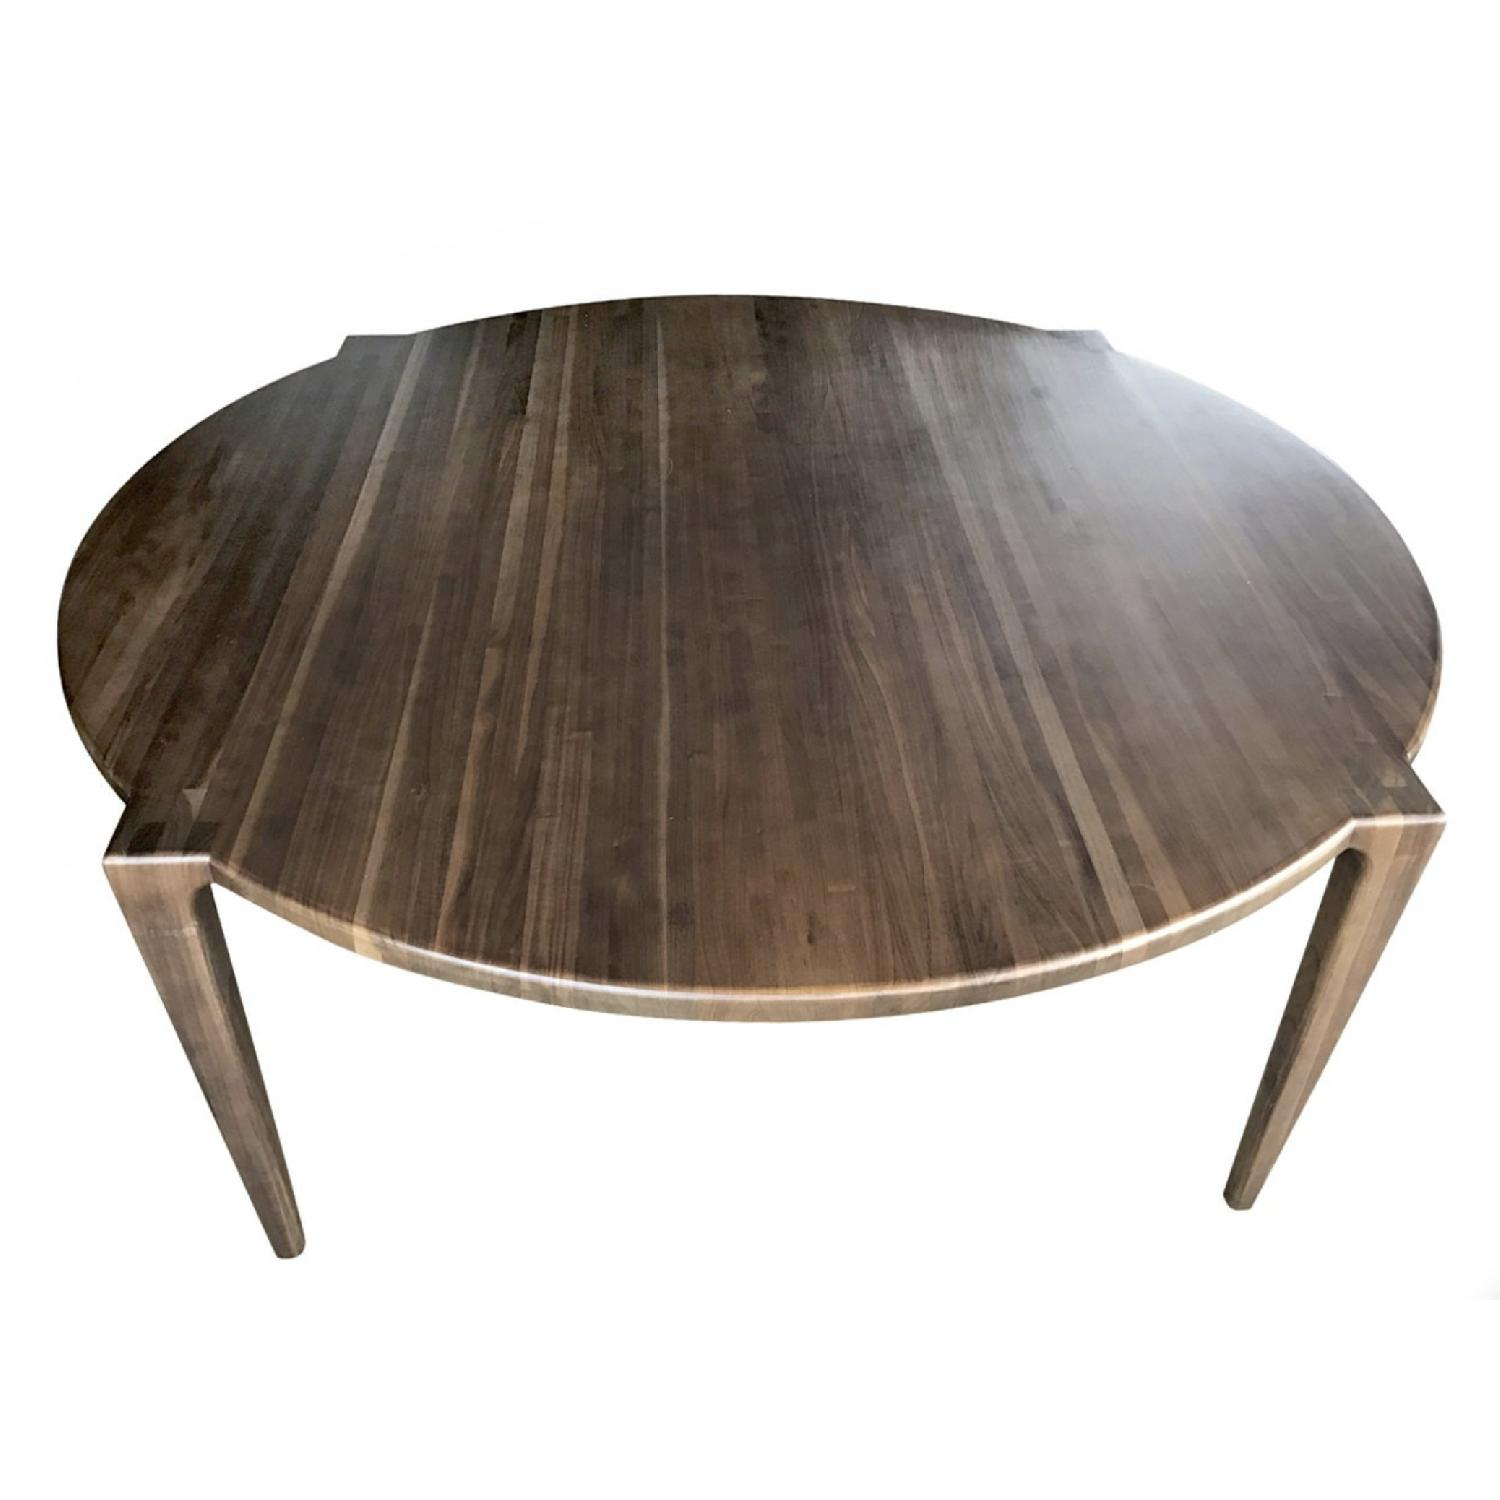 Round Walnut Dining Table - image-0